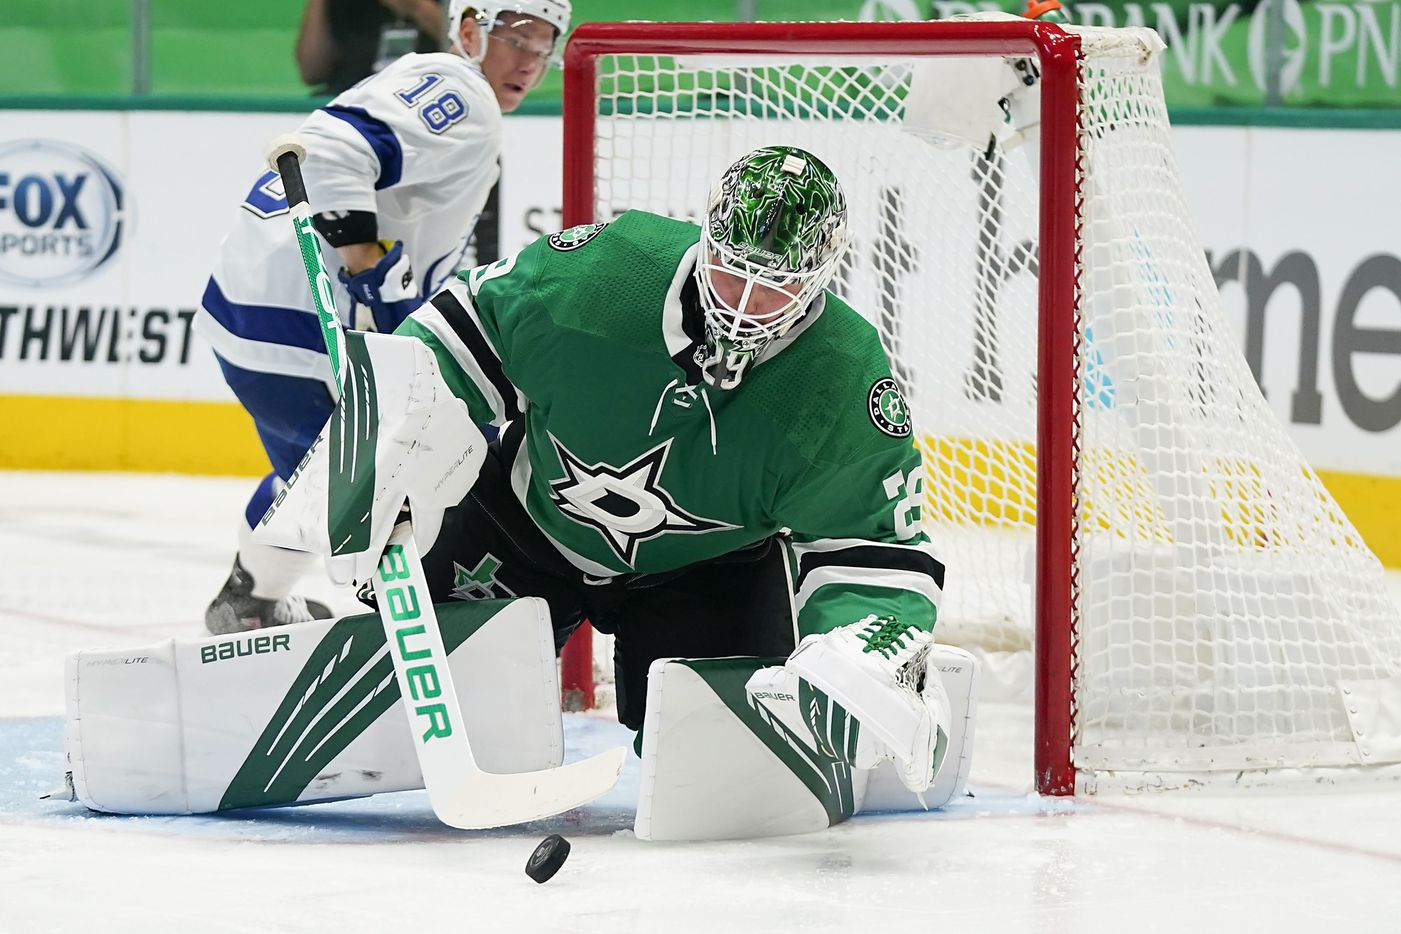 Dallas Stars goaltender Jake Oettinger covers up the puck in front of Tampa Bay Lightning left wing Ondrej Palat (18) during the second period of an NHL hockey game at the American Airlines Center on Thursday, March 25, 2021, in Dallas. (Smiley N. Pool/The Dallas Morning News)